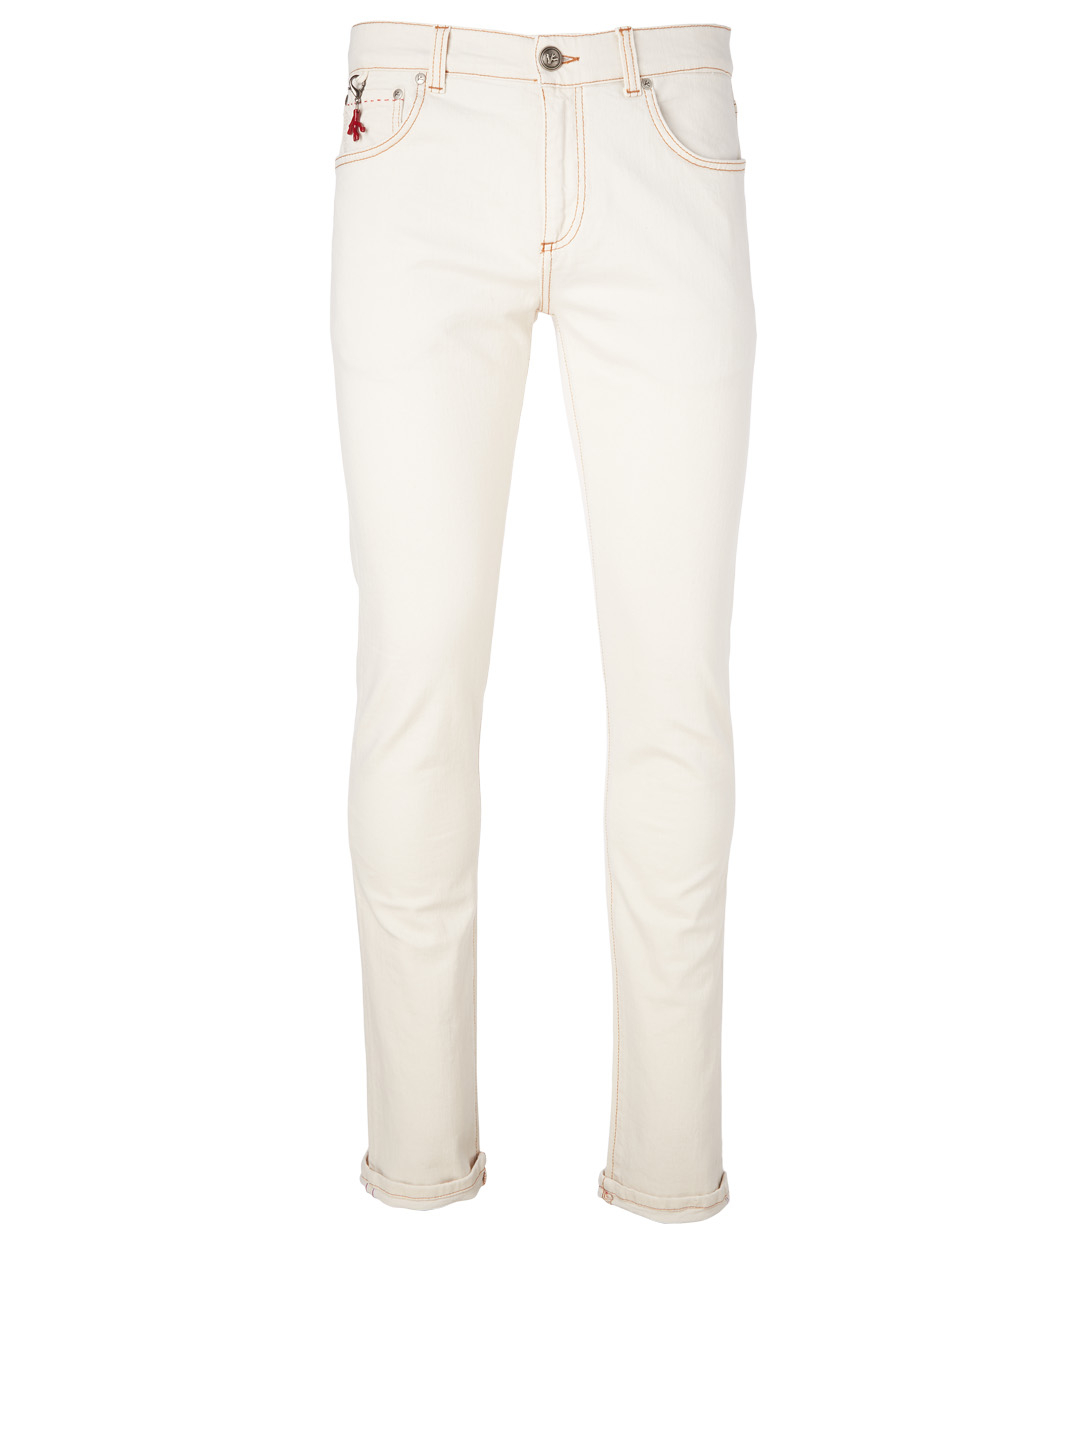 ISAIA Slim-Fit Jeans Men's Neutral